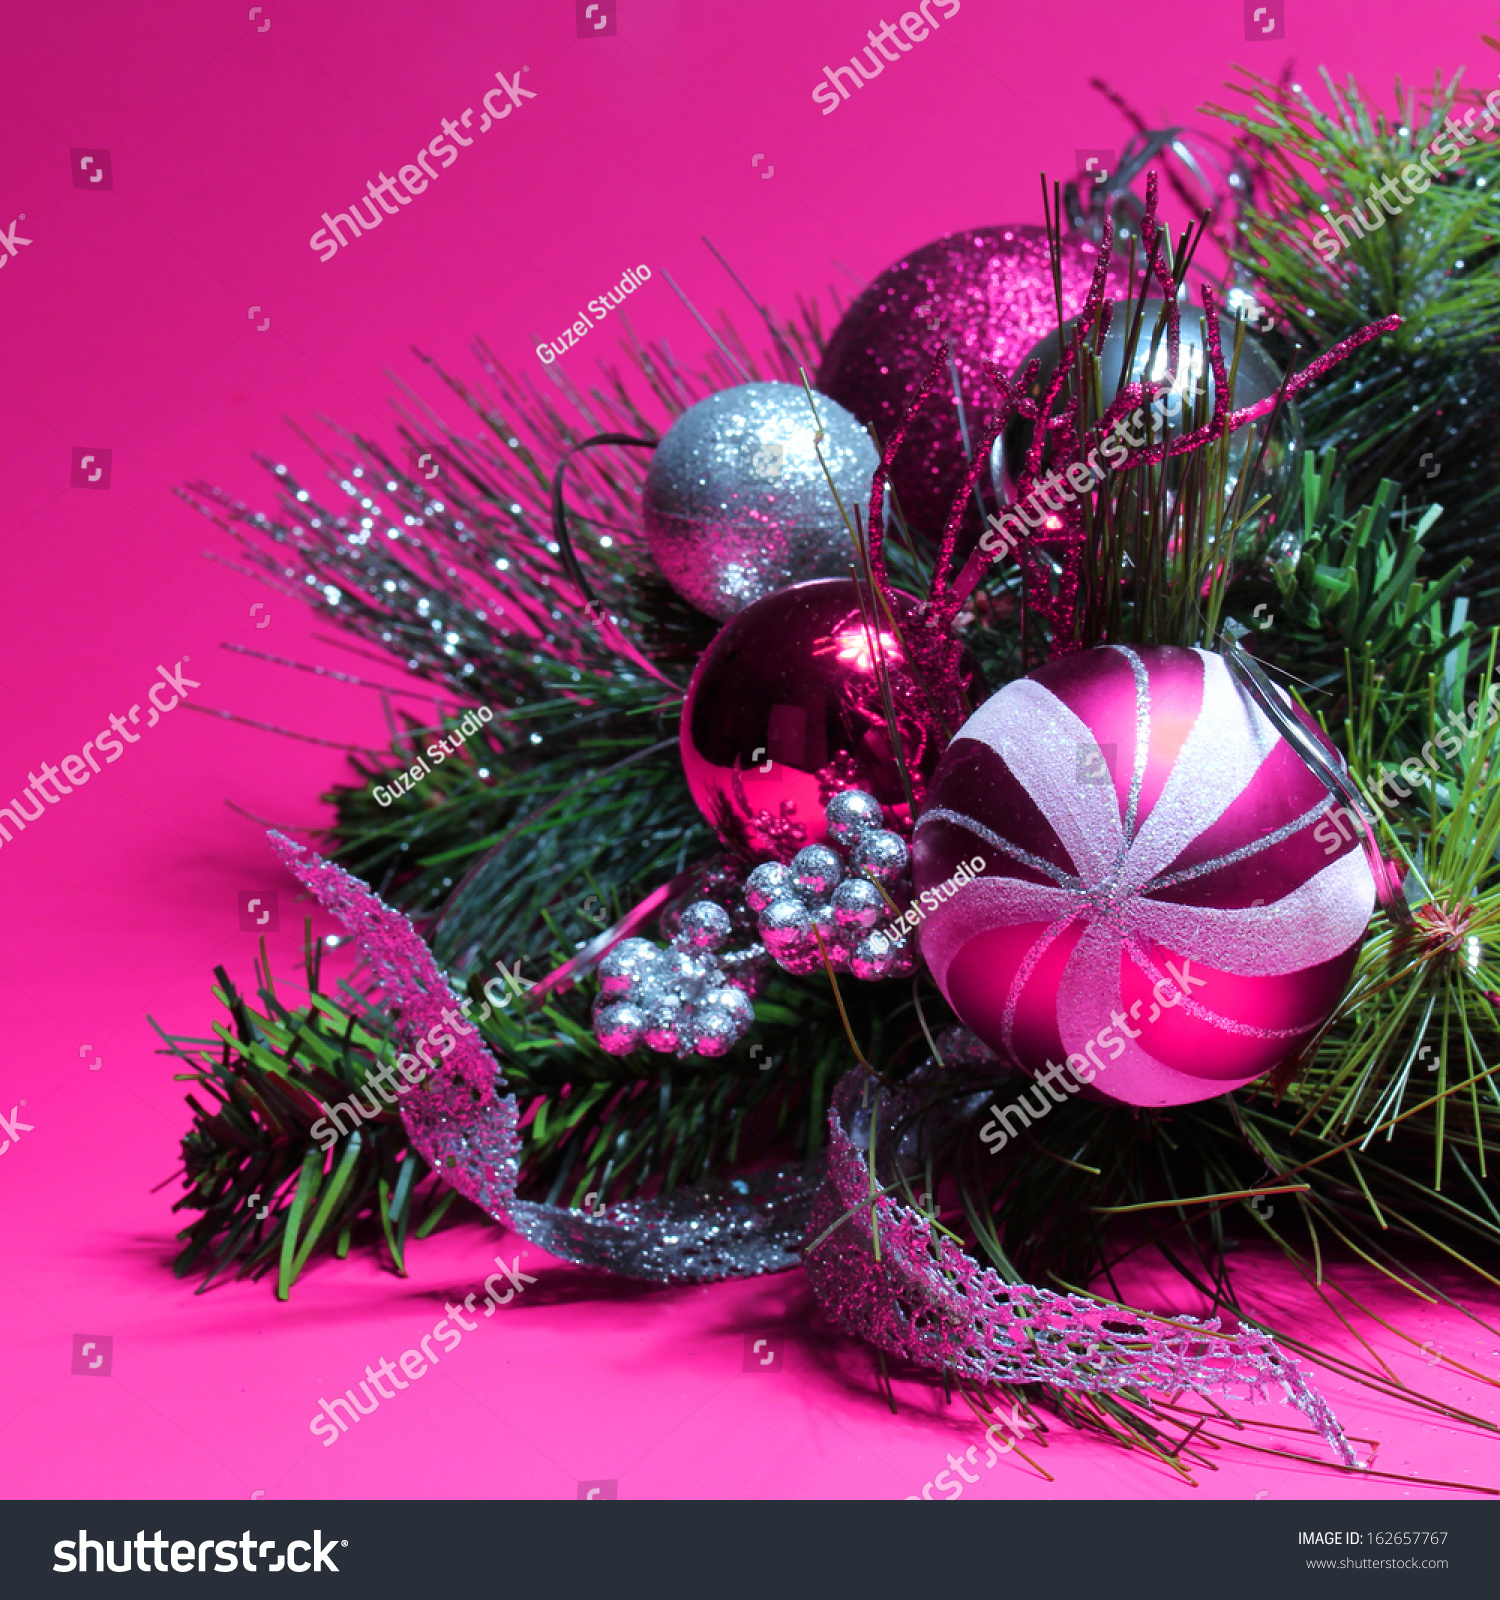 Hot pink christmas tree decorations - Christmas Decoration Hot Pink And Silver Balls On Christmas Tree Branch Over Magenta Background Preview Save To A Lightbox